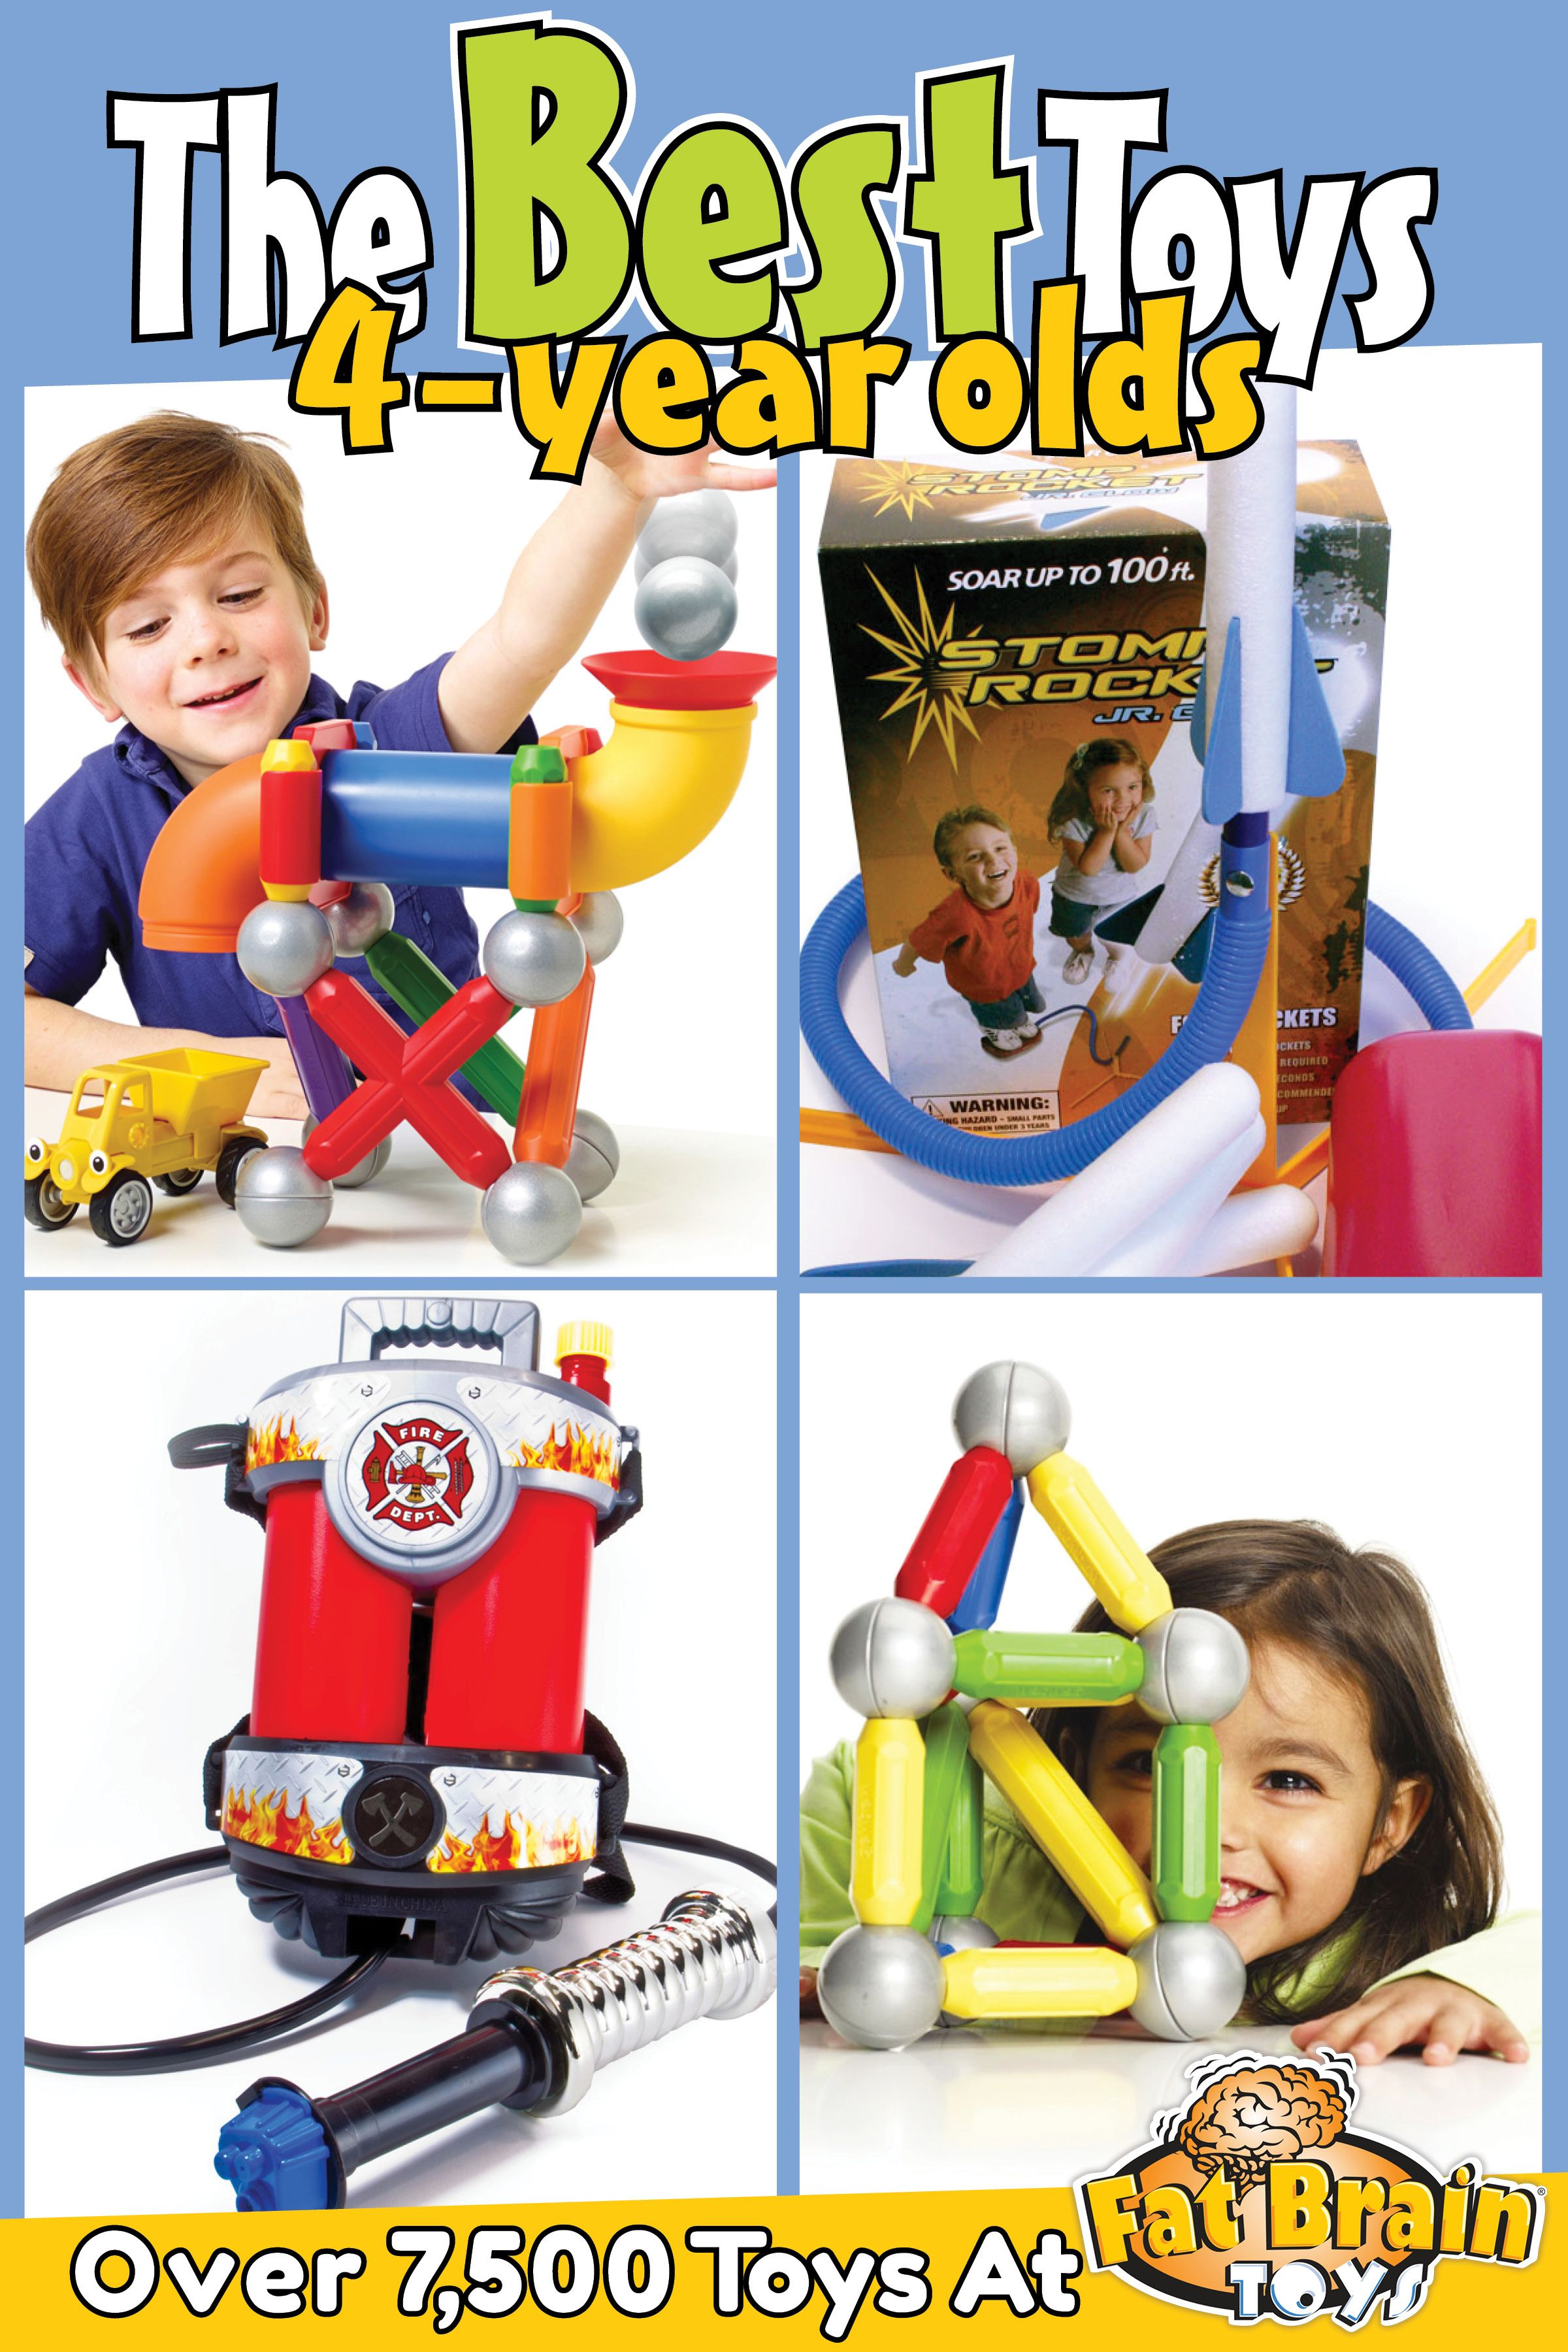 The Best Toys, Games And Gifts On The Planet For